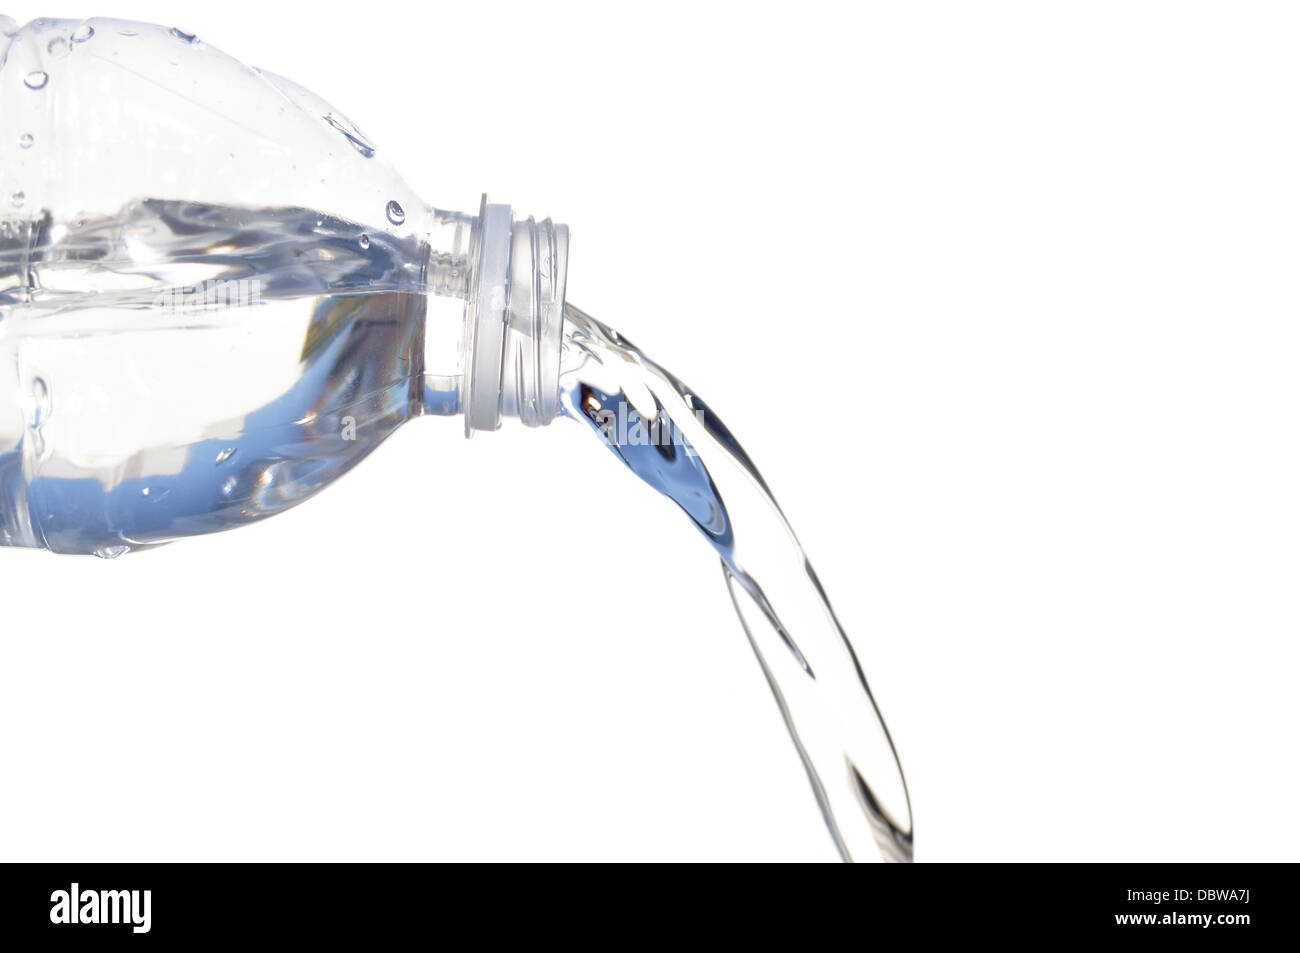 Verser de l'eau bouteille plastique isolated on White Photo Stock